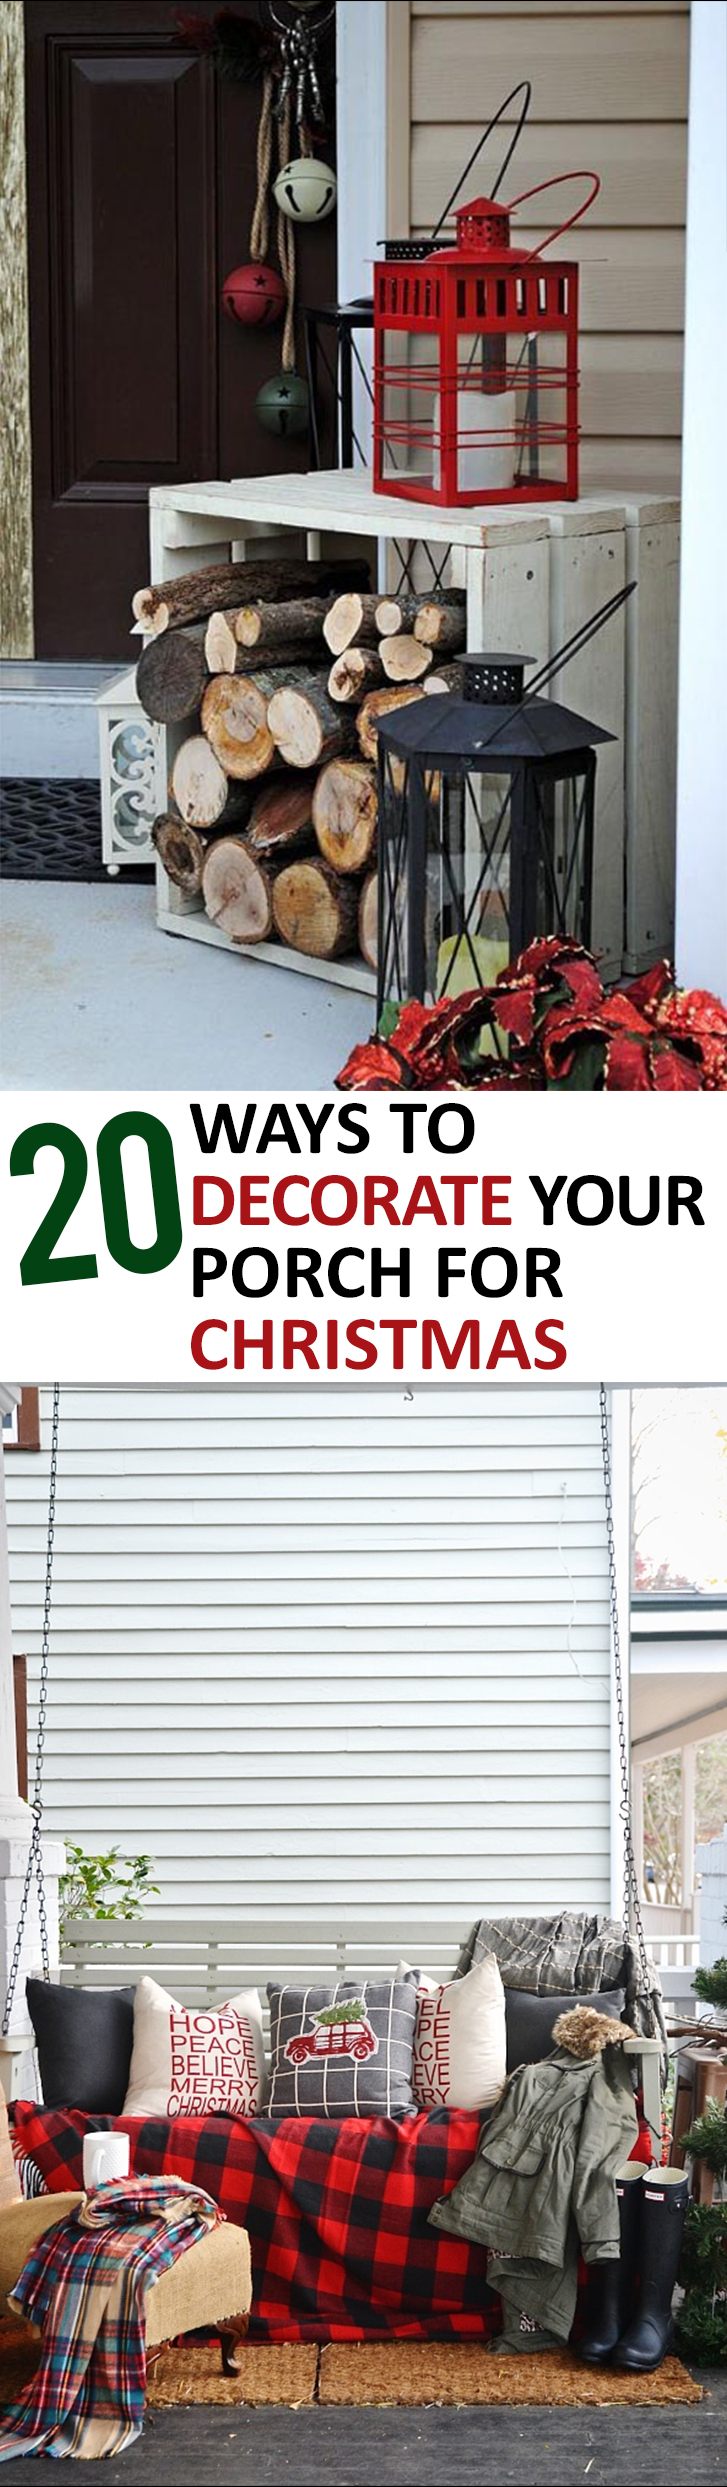 20-ways-to-decorate-your-porch-for-christmas-2